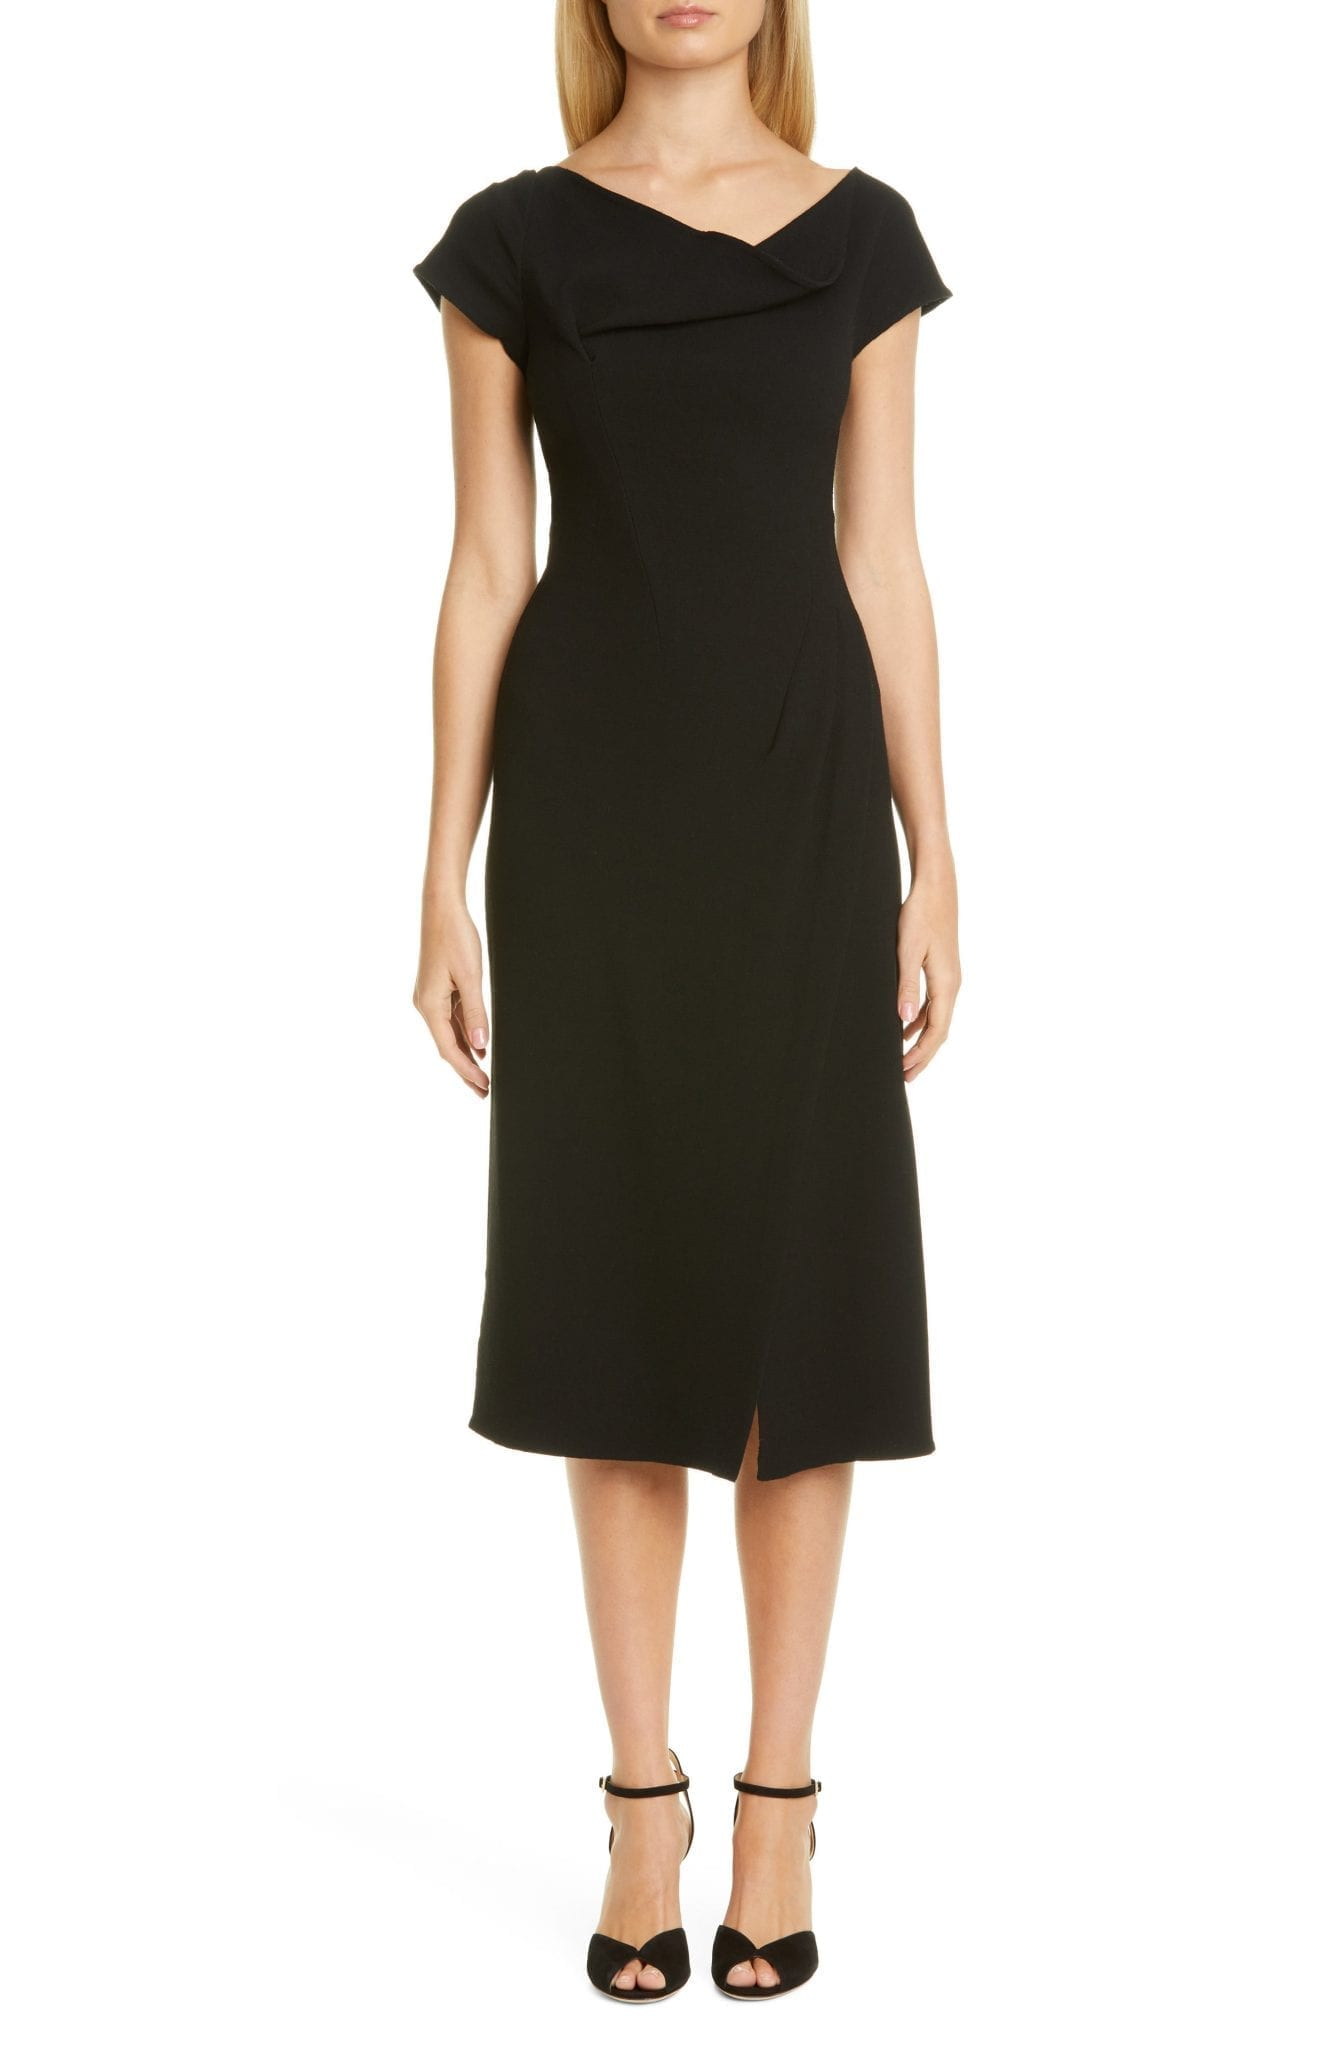 OSCAR DE LA RENTA Drape Neck Dress